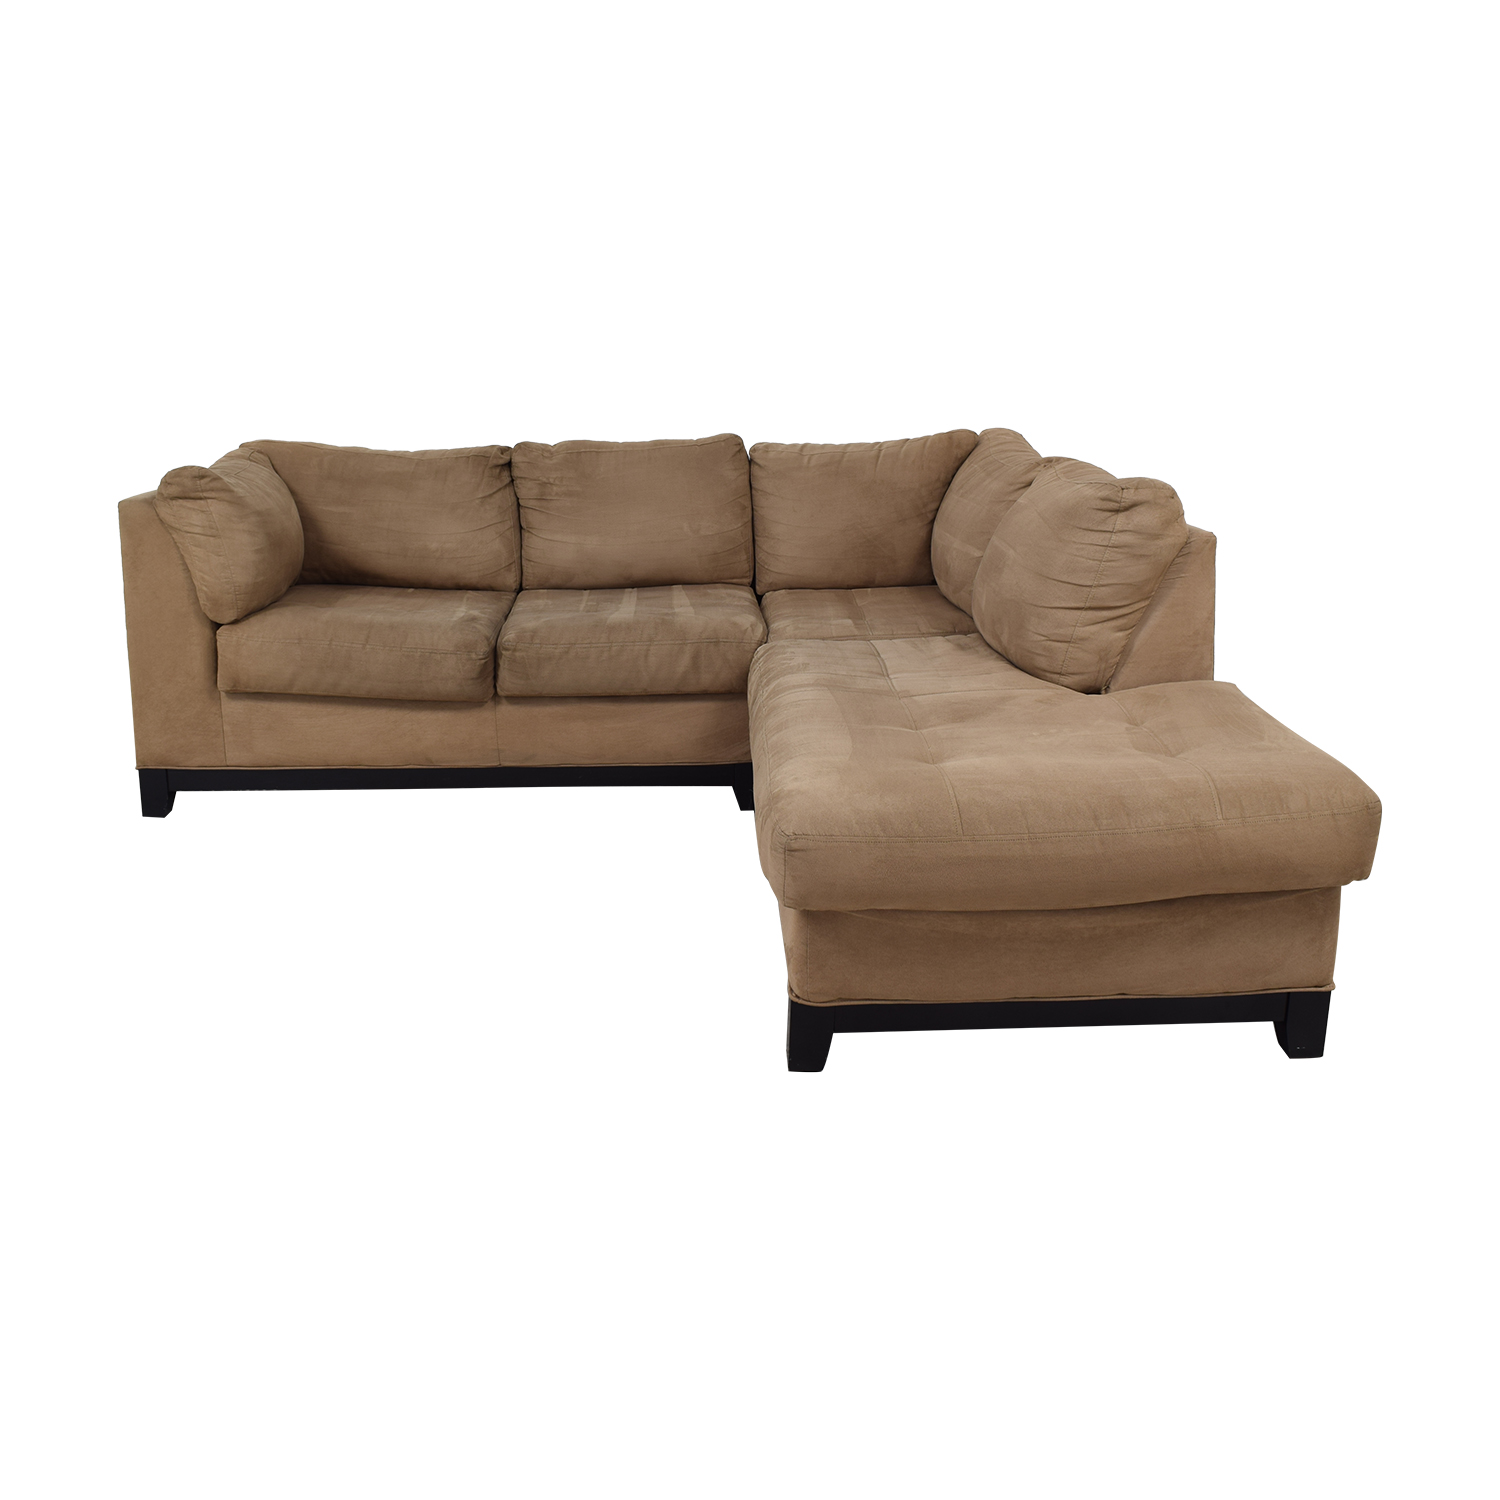 buy Raymour & Flanigan Kathy Ireland Mocha Microfiber Chaise Sectional Raymour & Flanigan Sectionals